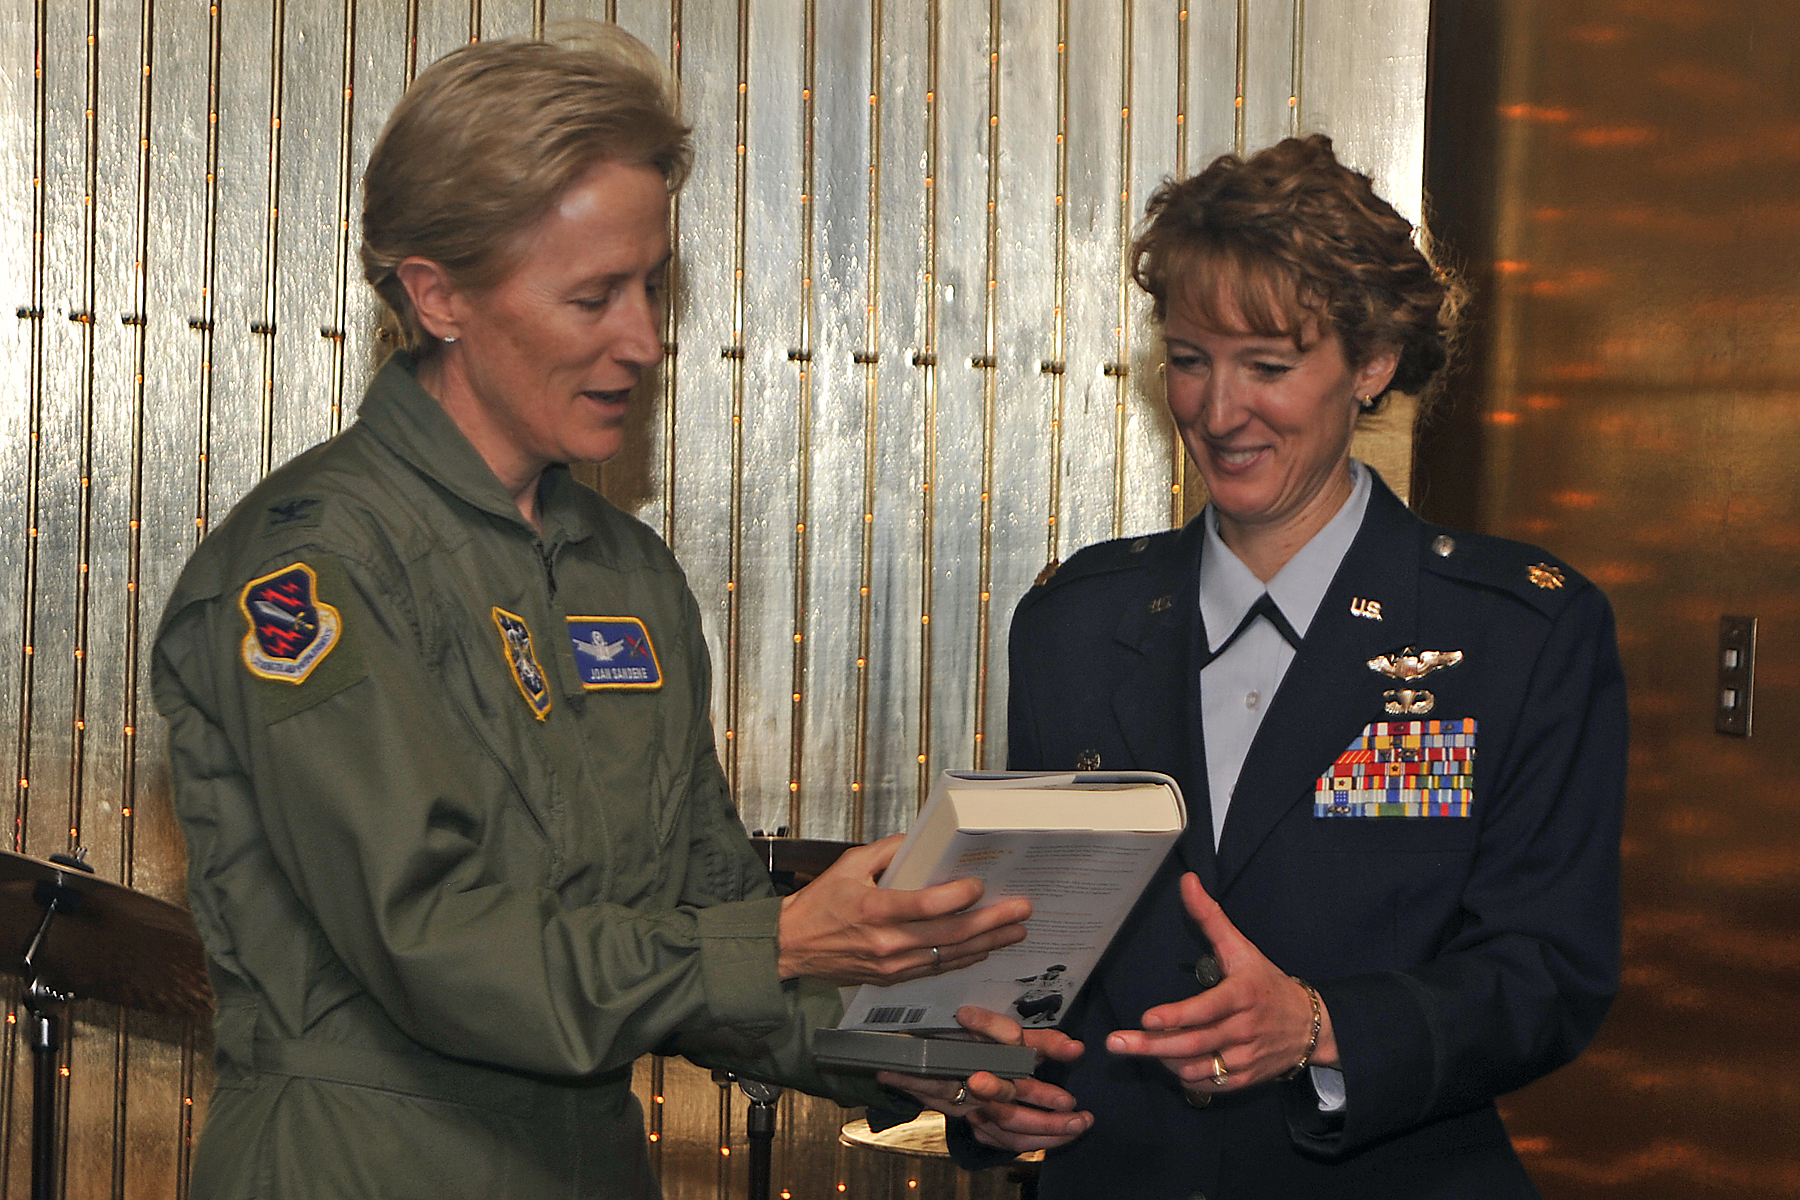 Academy Officer Shares Her Air Force Story U S Air Force Display Ask melissa may henry a question now. af mil